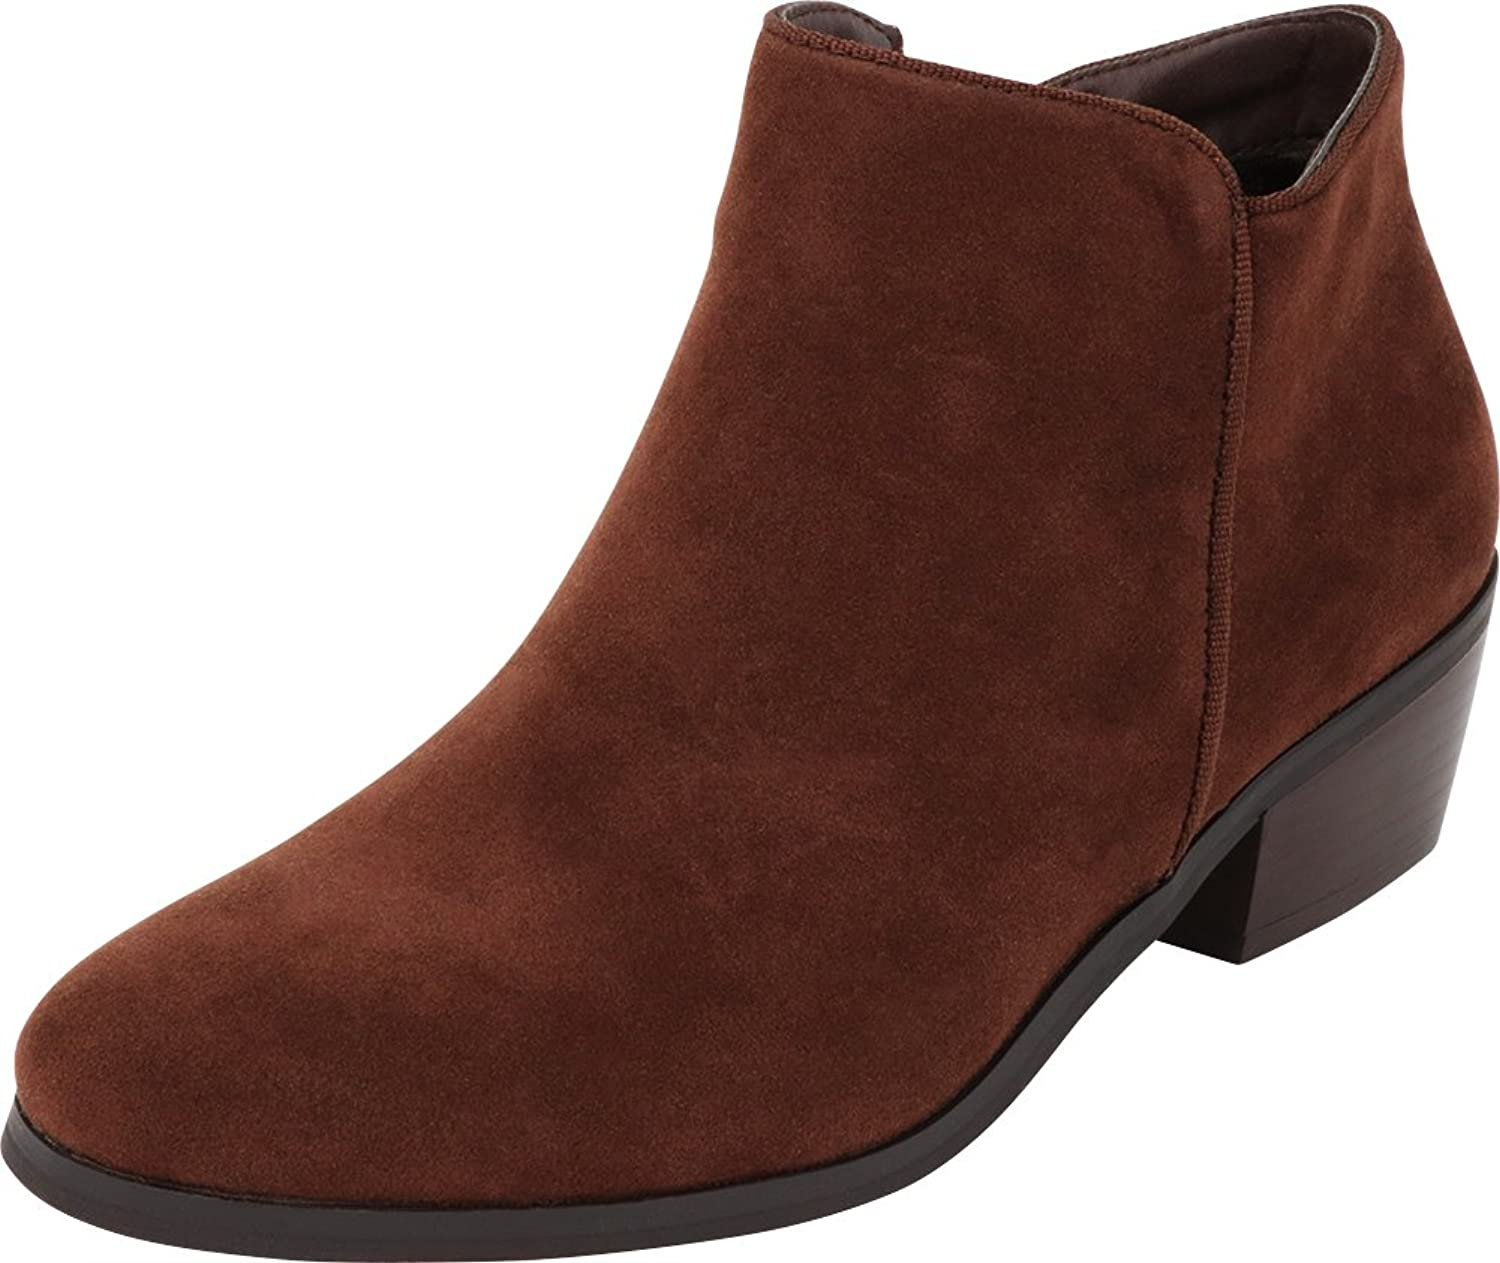 Cambridge Select Women's Western Cowboy Closed Toe Chunky Stacked Block Heel Ankle Bootie